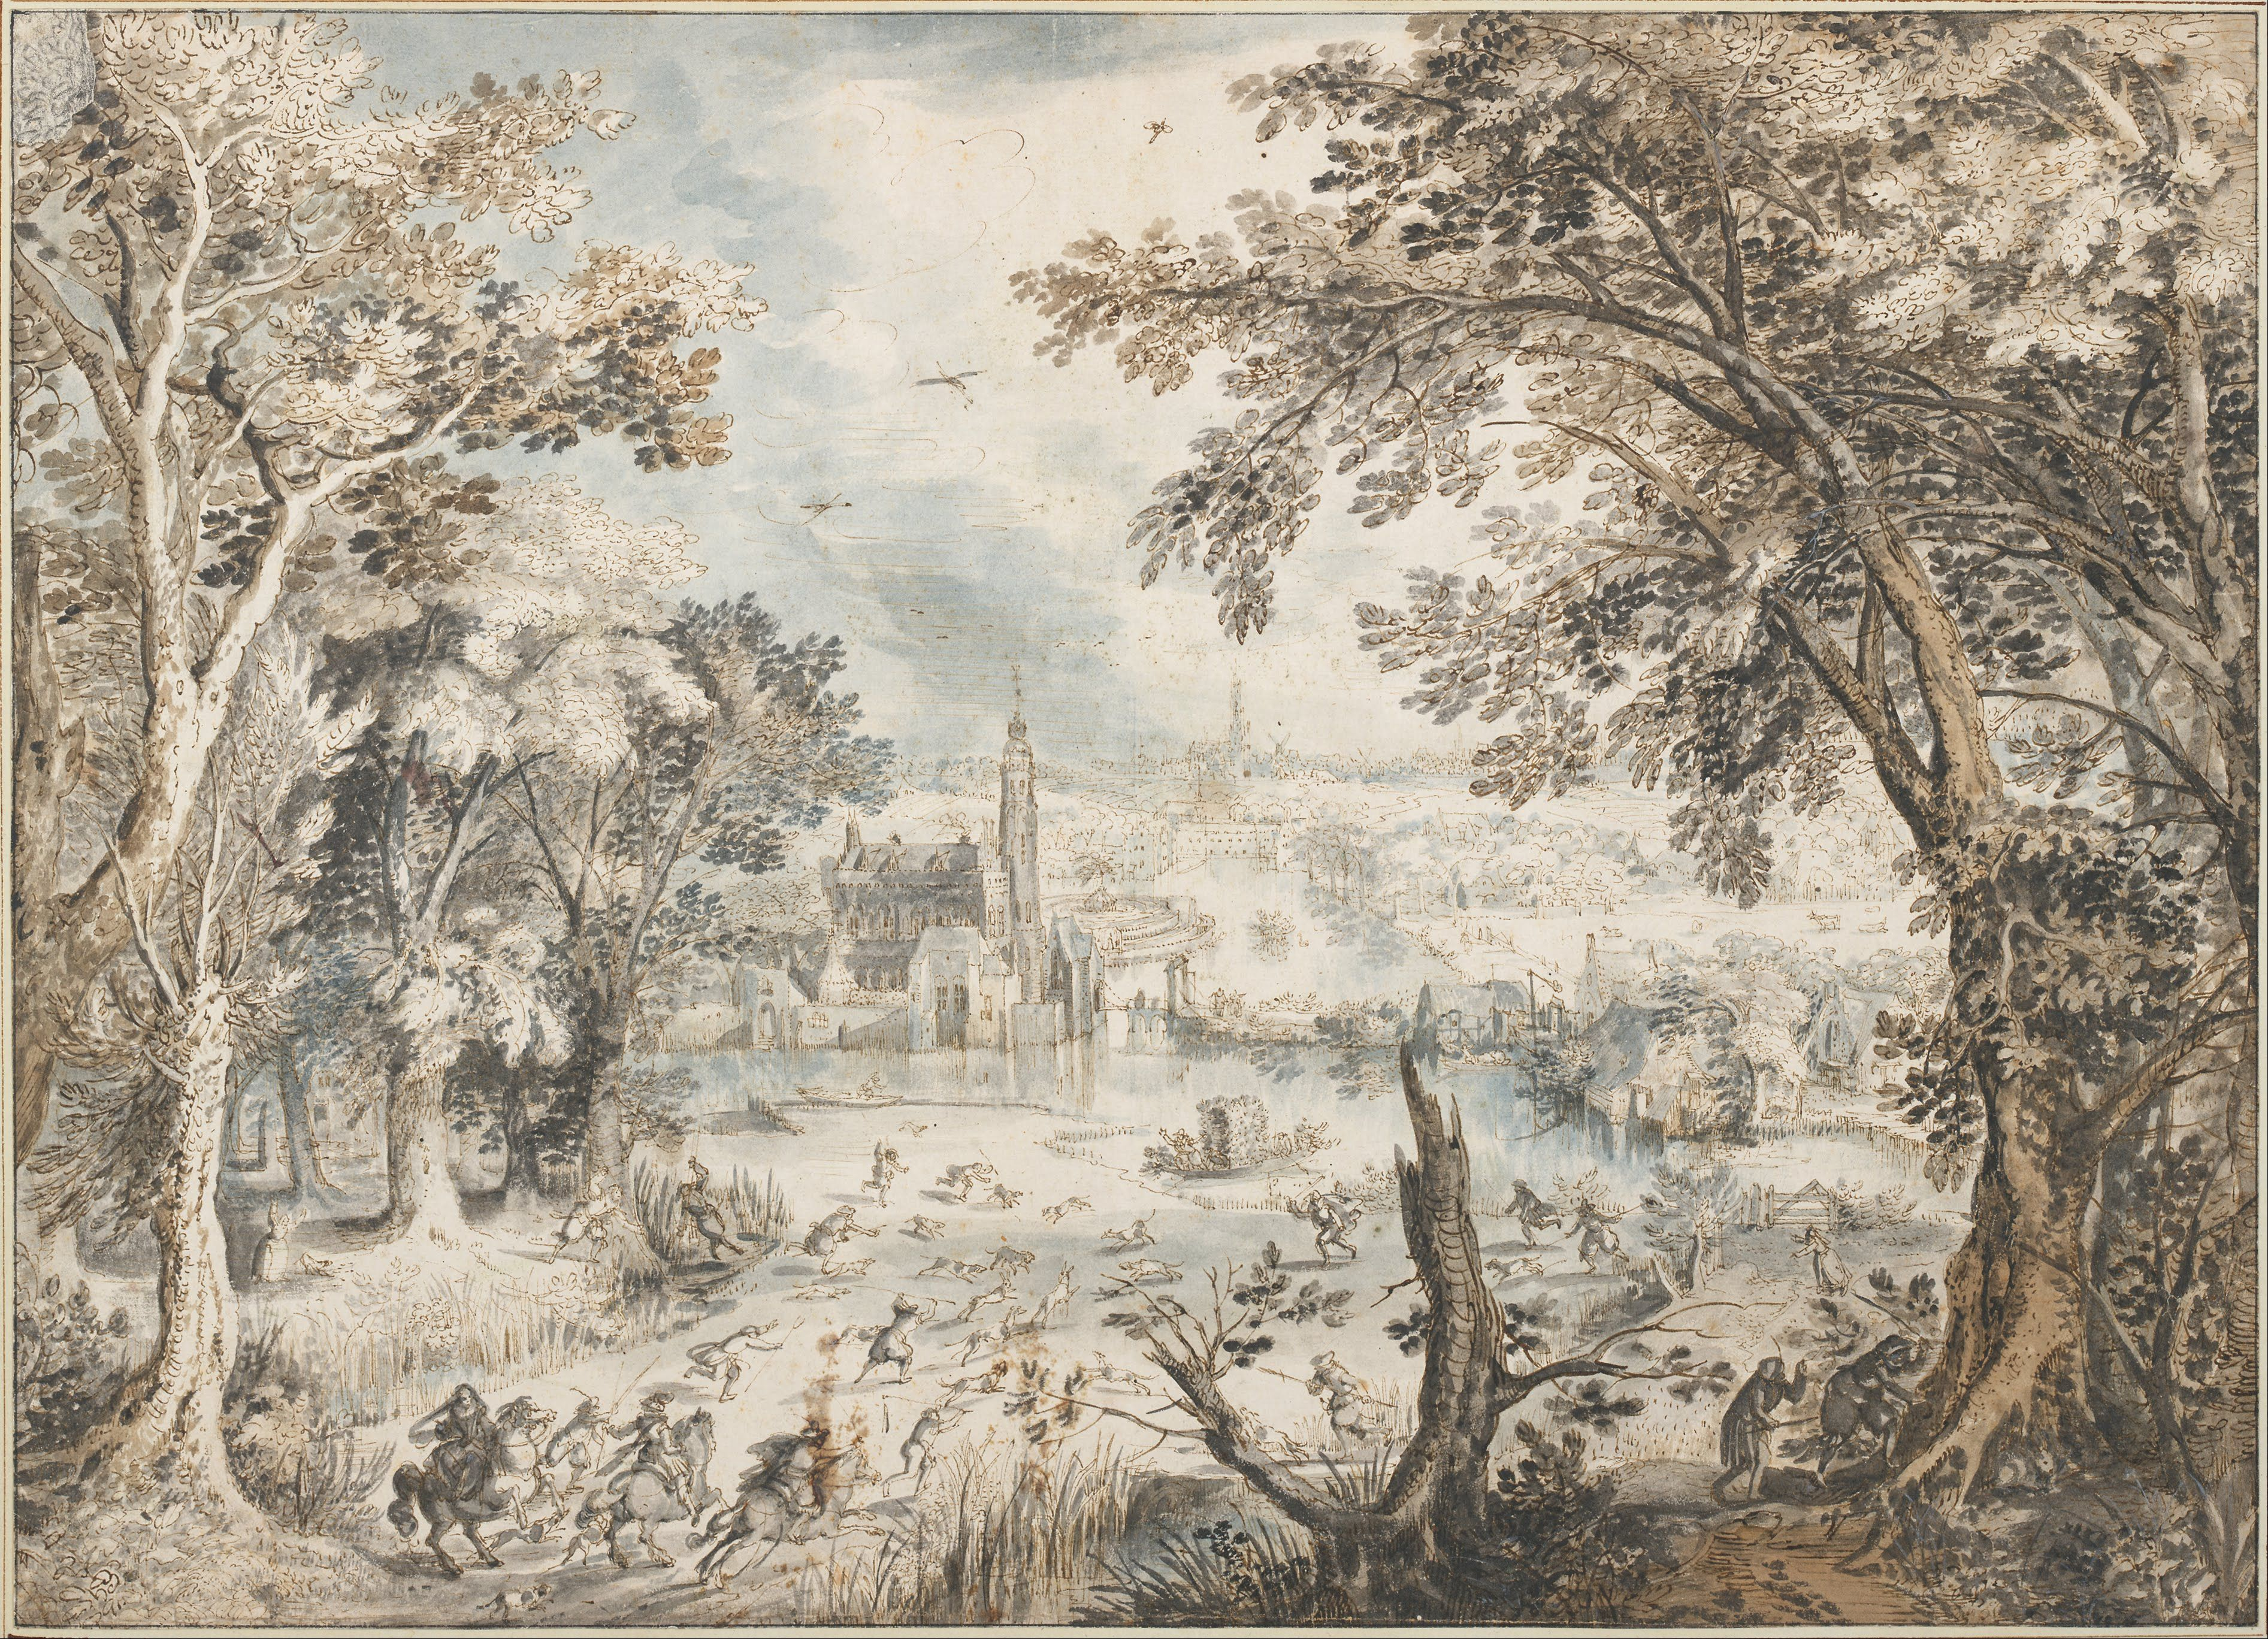 David_Vinckboons_-_Landscape_with_a_Hare_Hunt,_1601-1602_-_Google_Art_Project.jpg 3,786×2,736 pixels